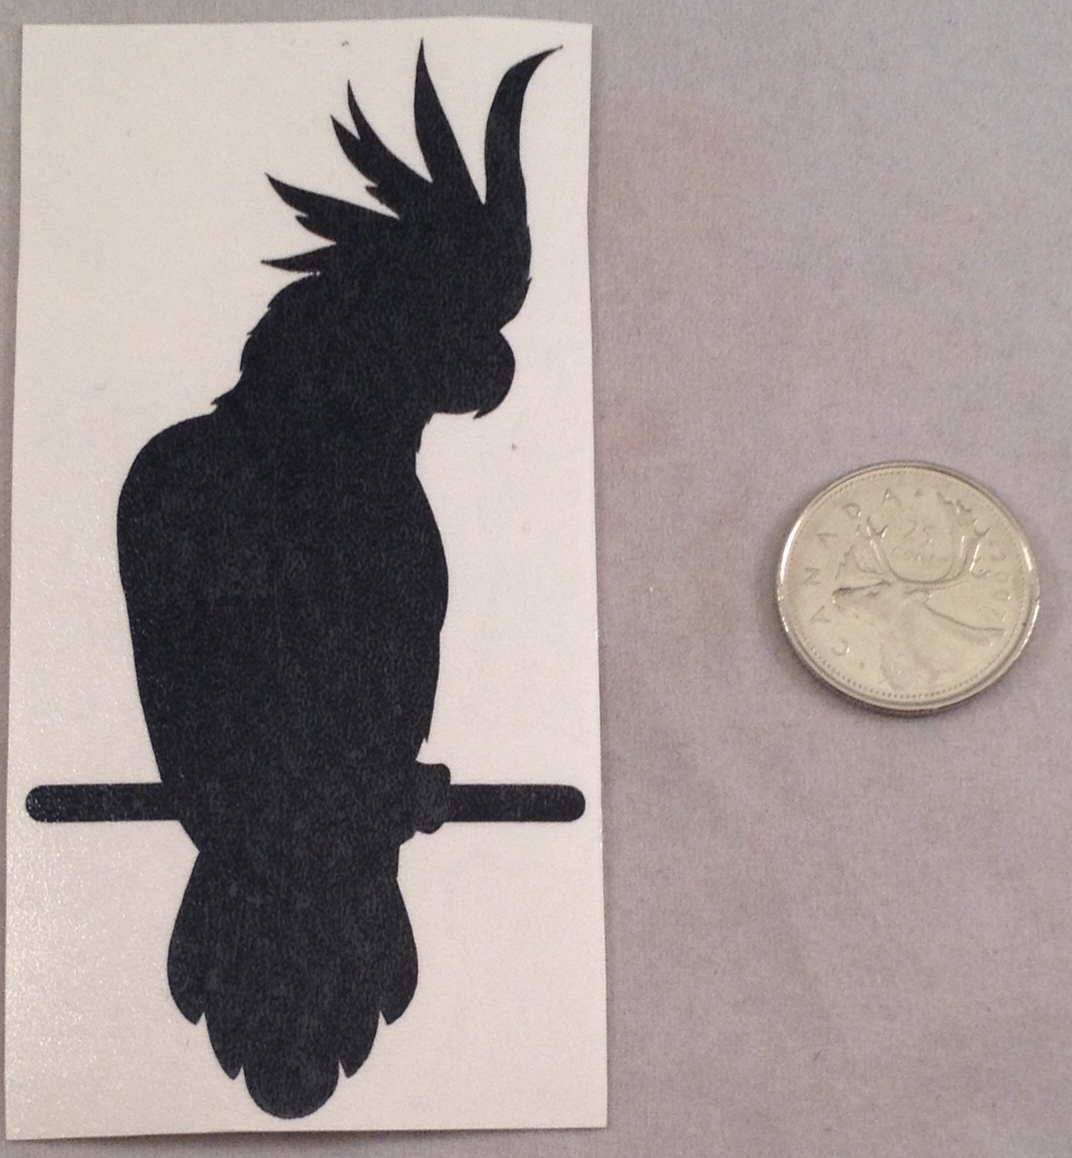 Cockatoo Silhouette Decal